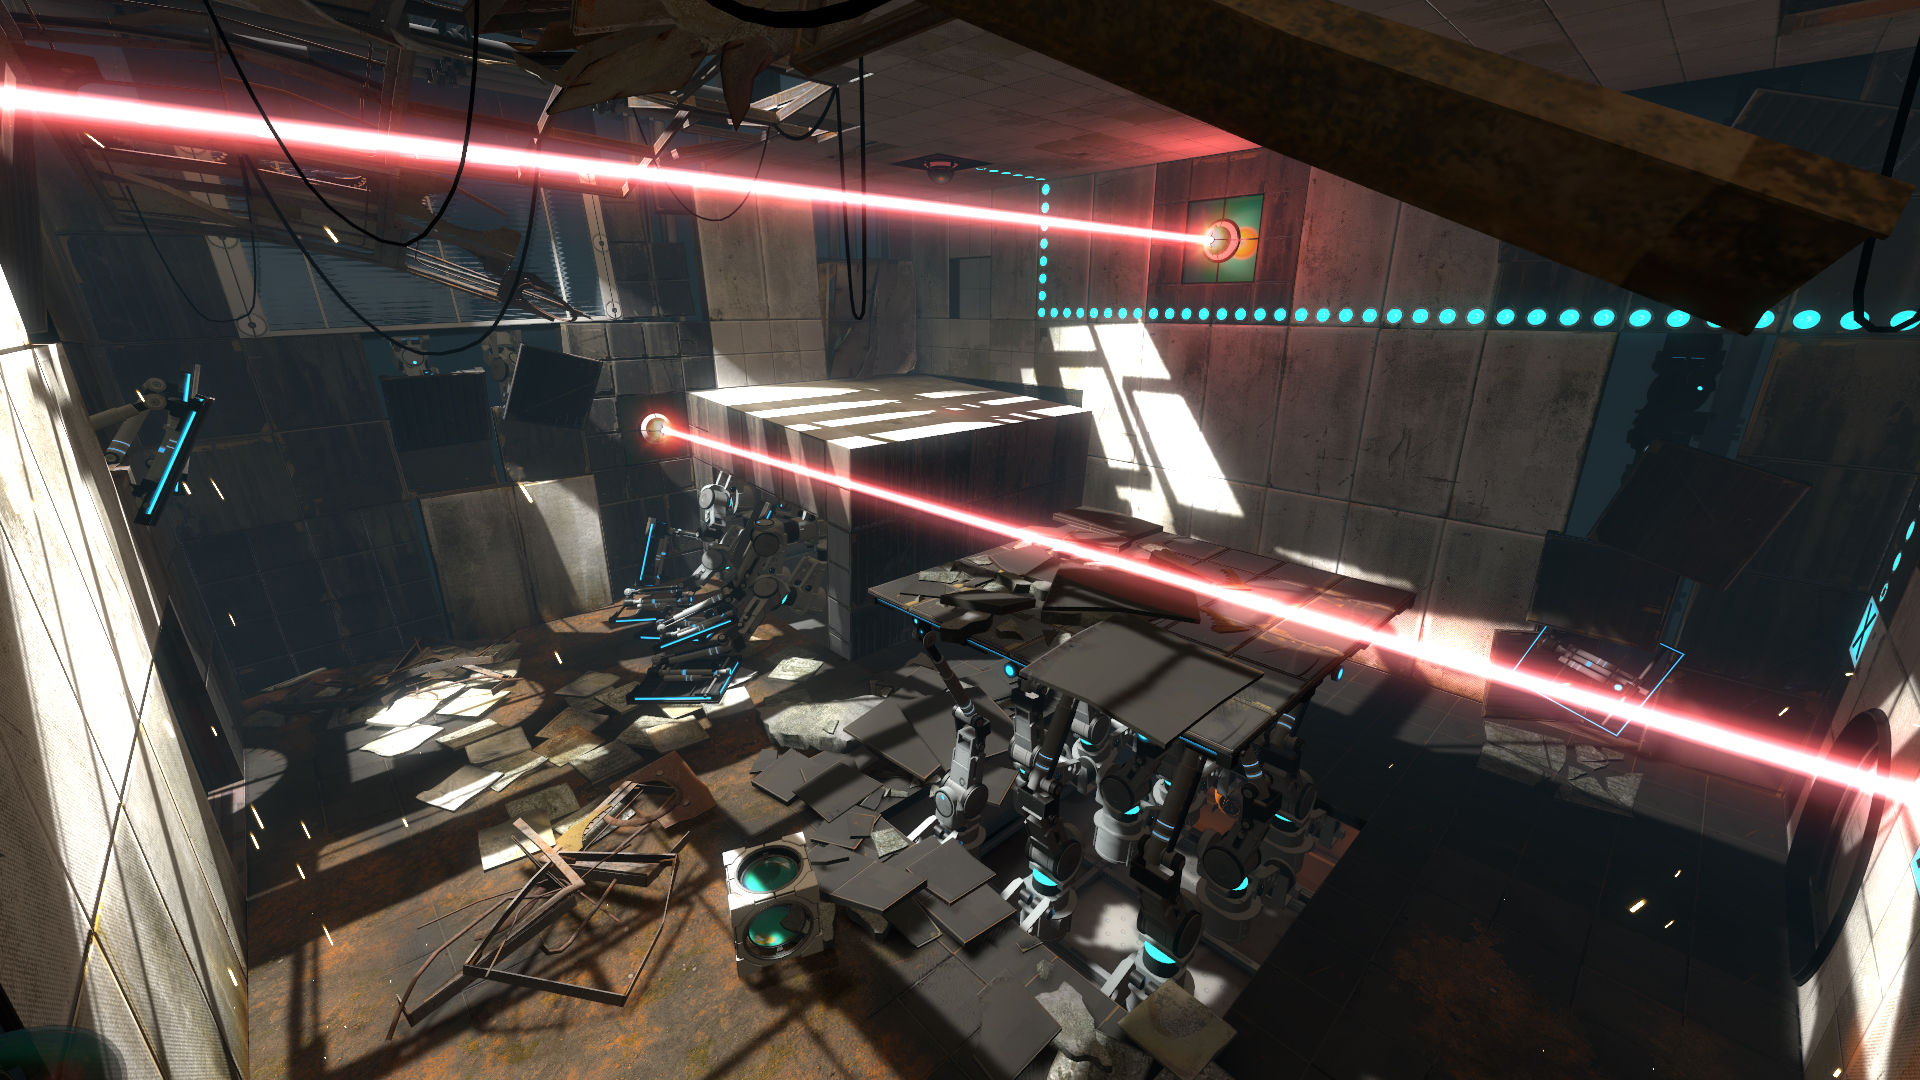 Buy portal 2 for ps3 and get the mac version for free.